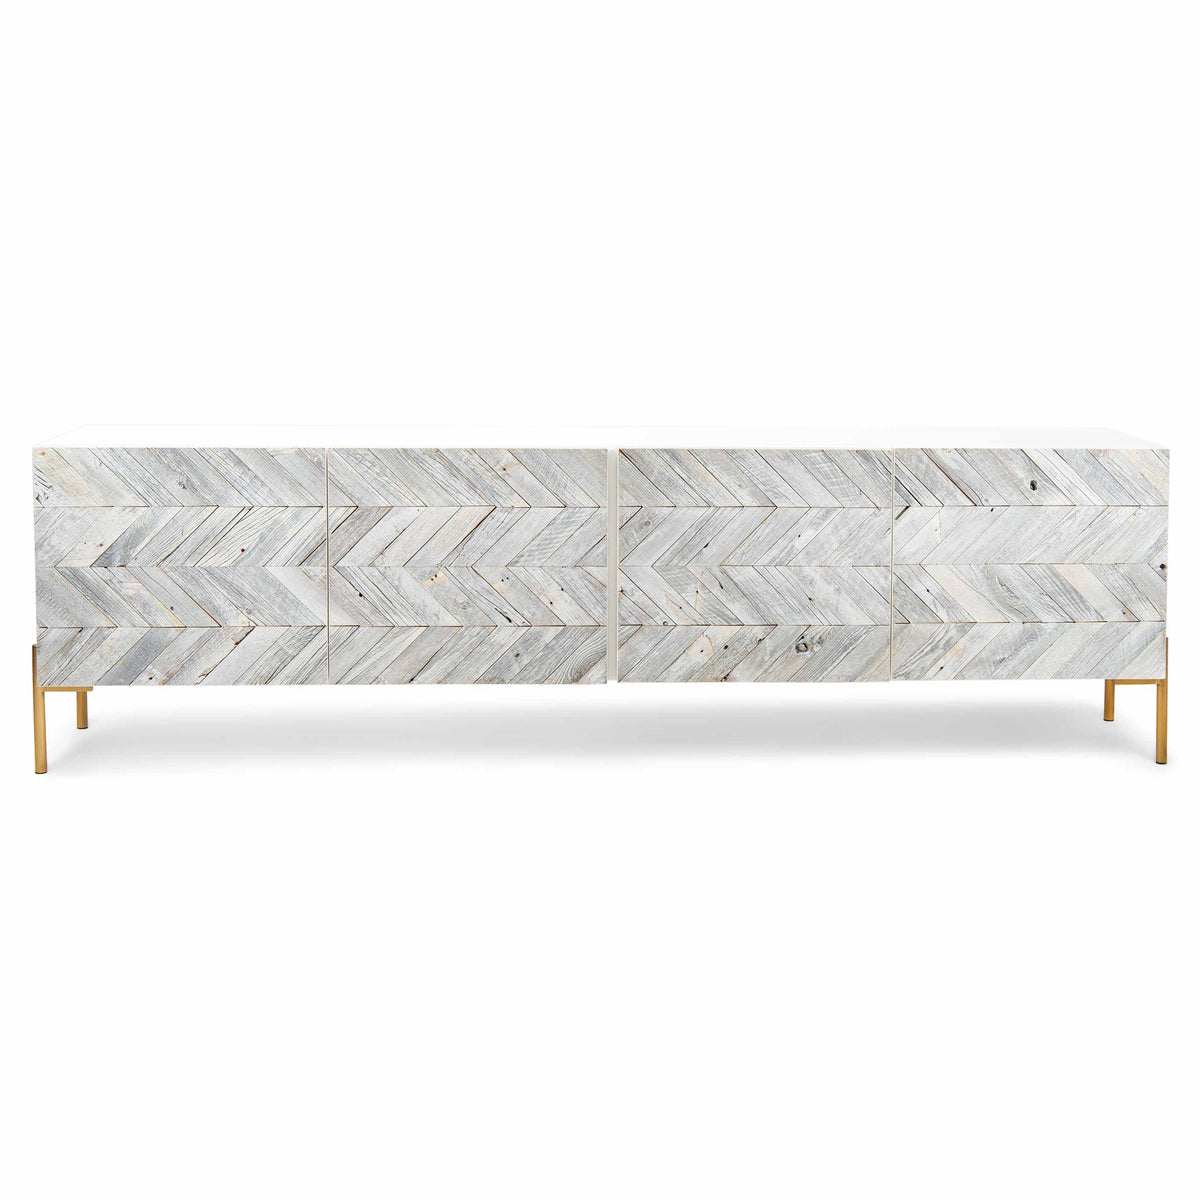 Mr. Smith Credenza in White Washed Recycled Wood